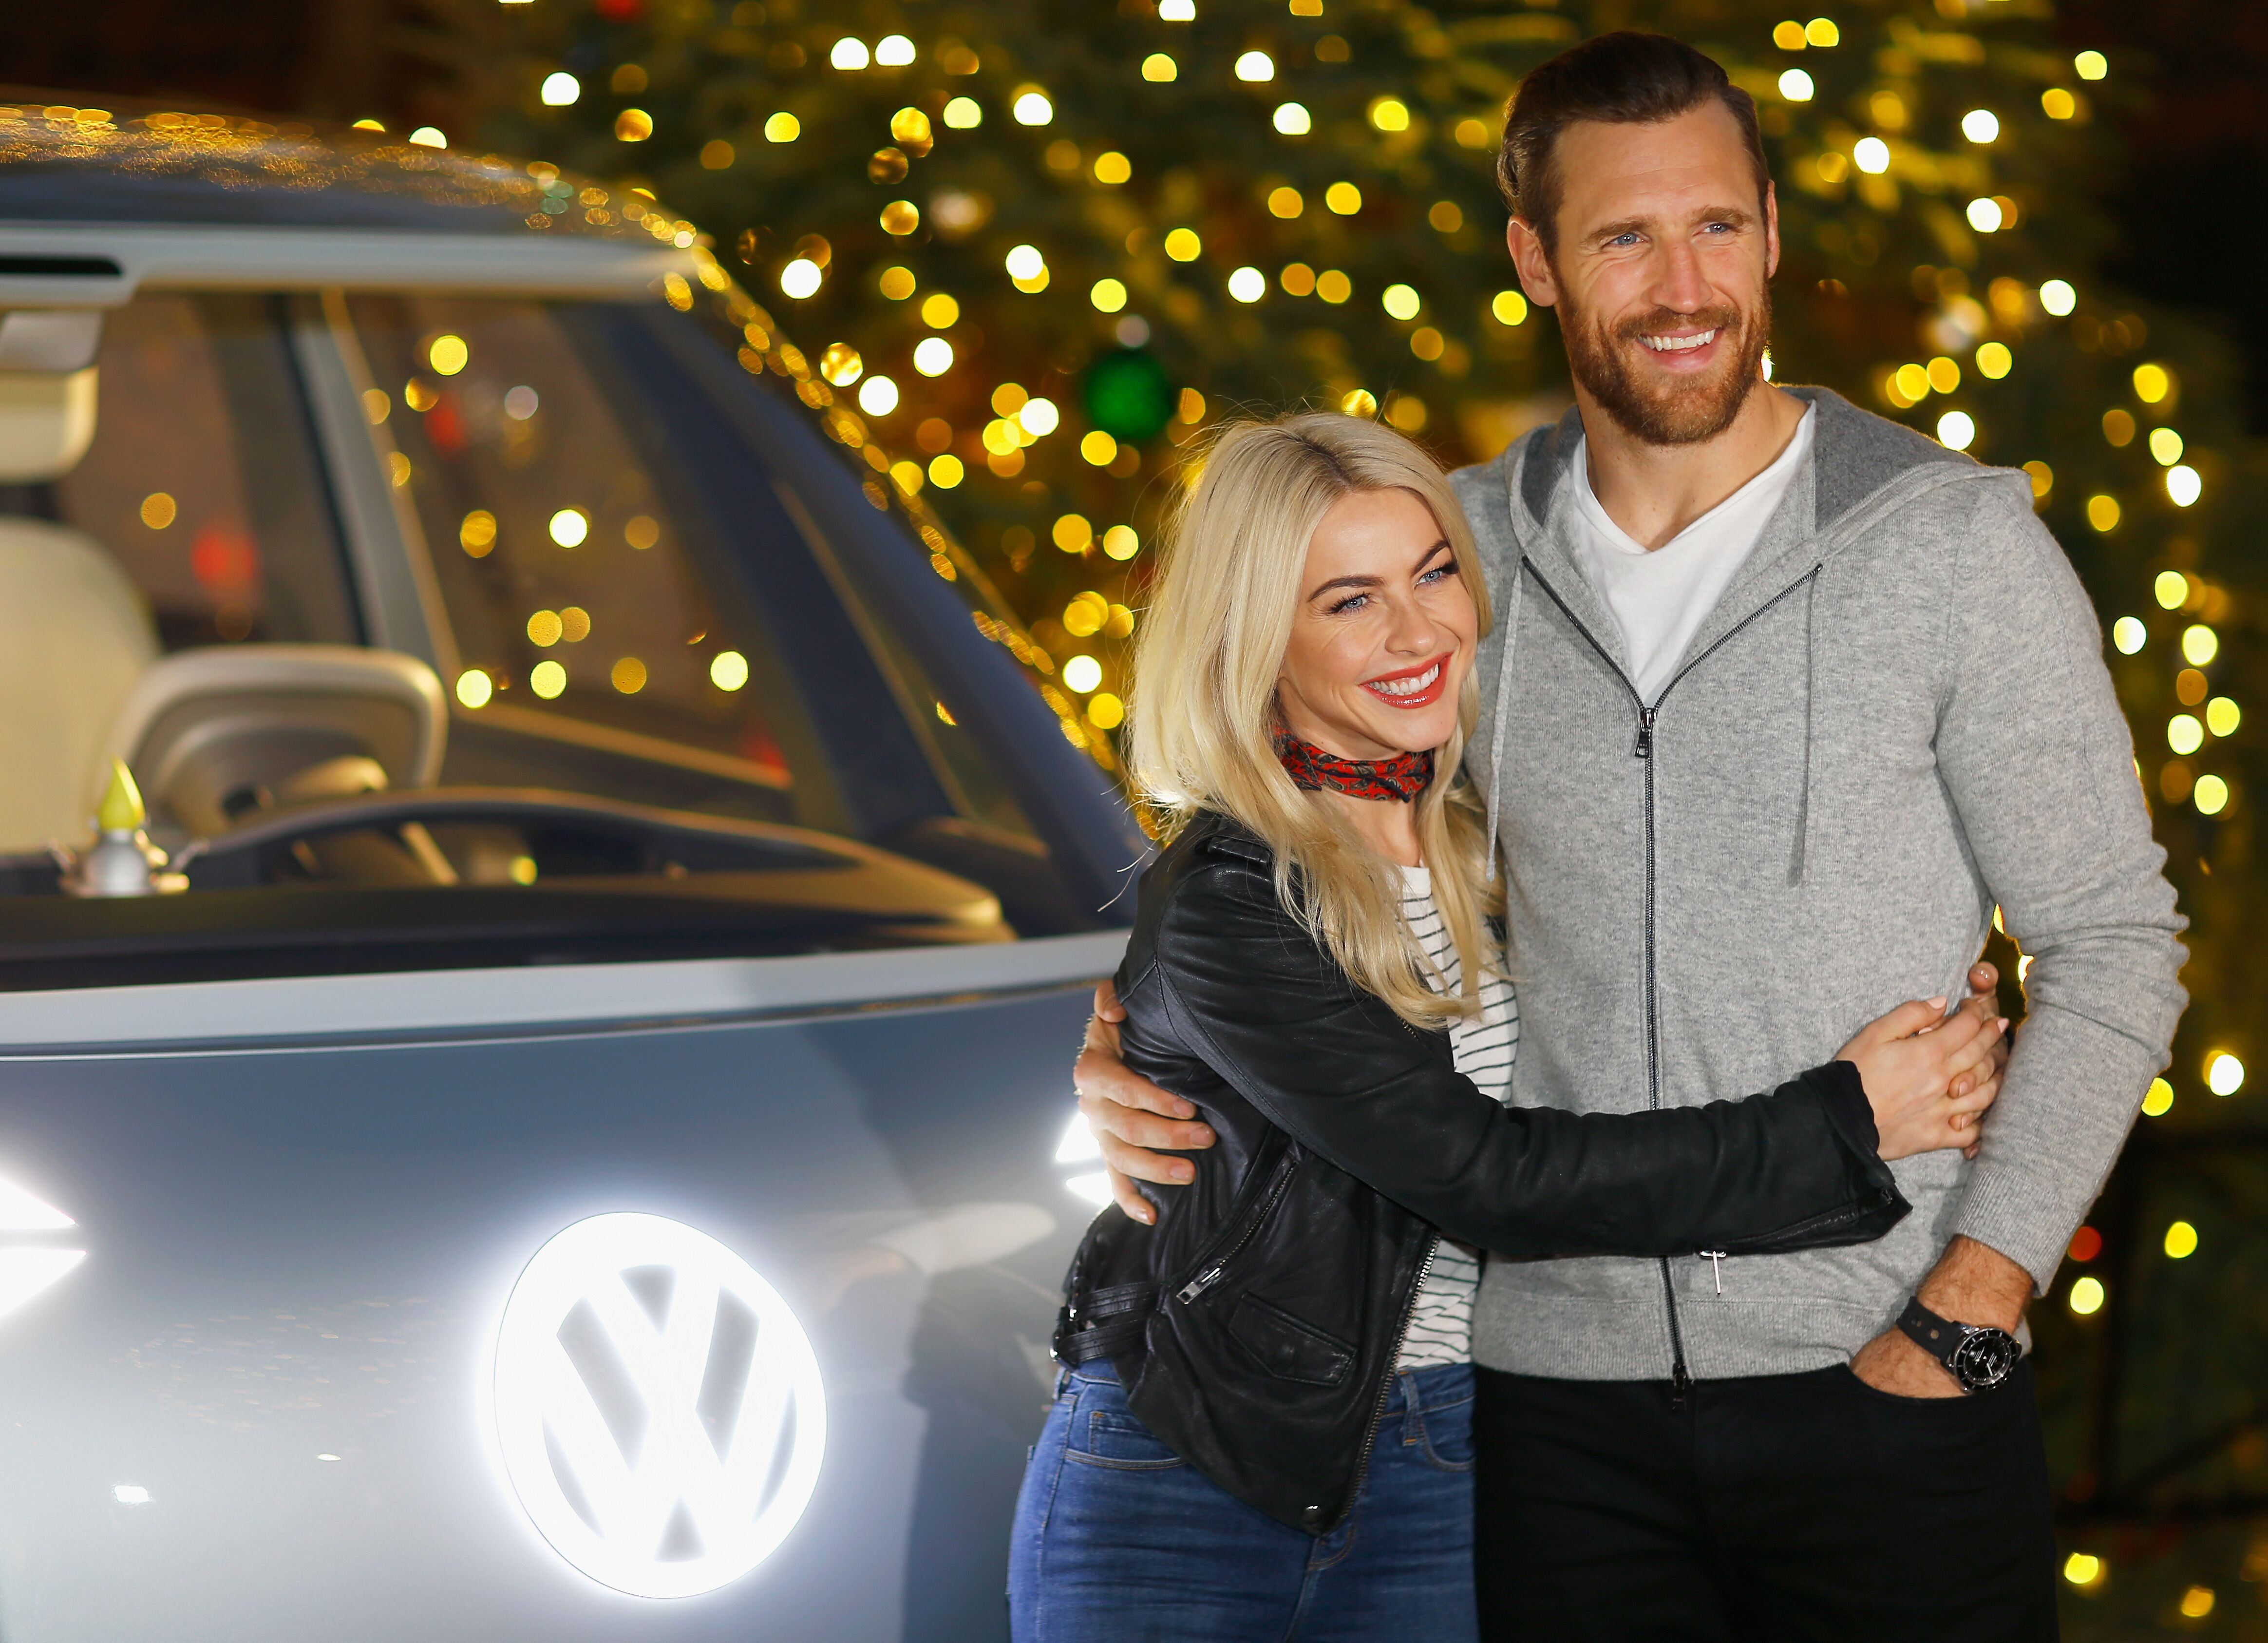 Julianne Hough and Brooks Laich at the Volkswagen Holiday Drive-In Event in Los Angeles, California on December 16, 2017 Photo Justin Edmonds/Getty Images